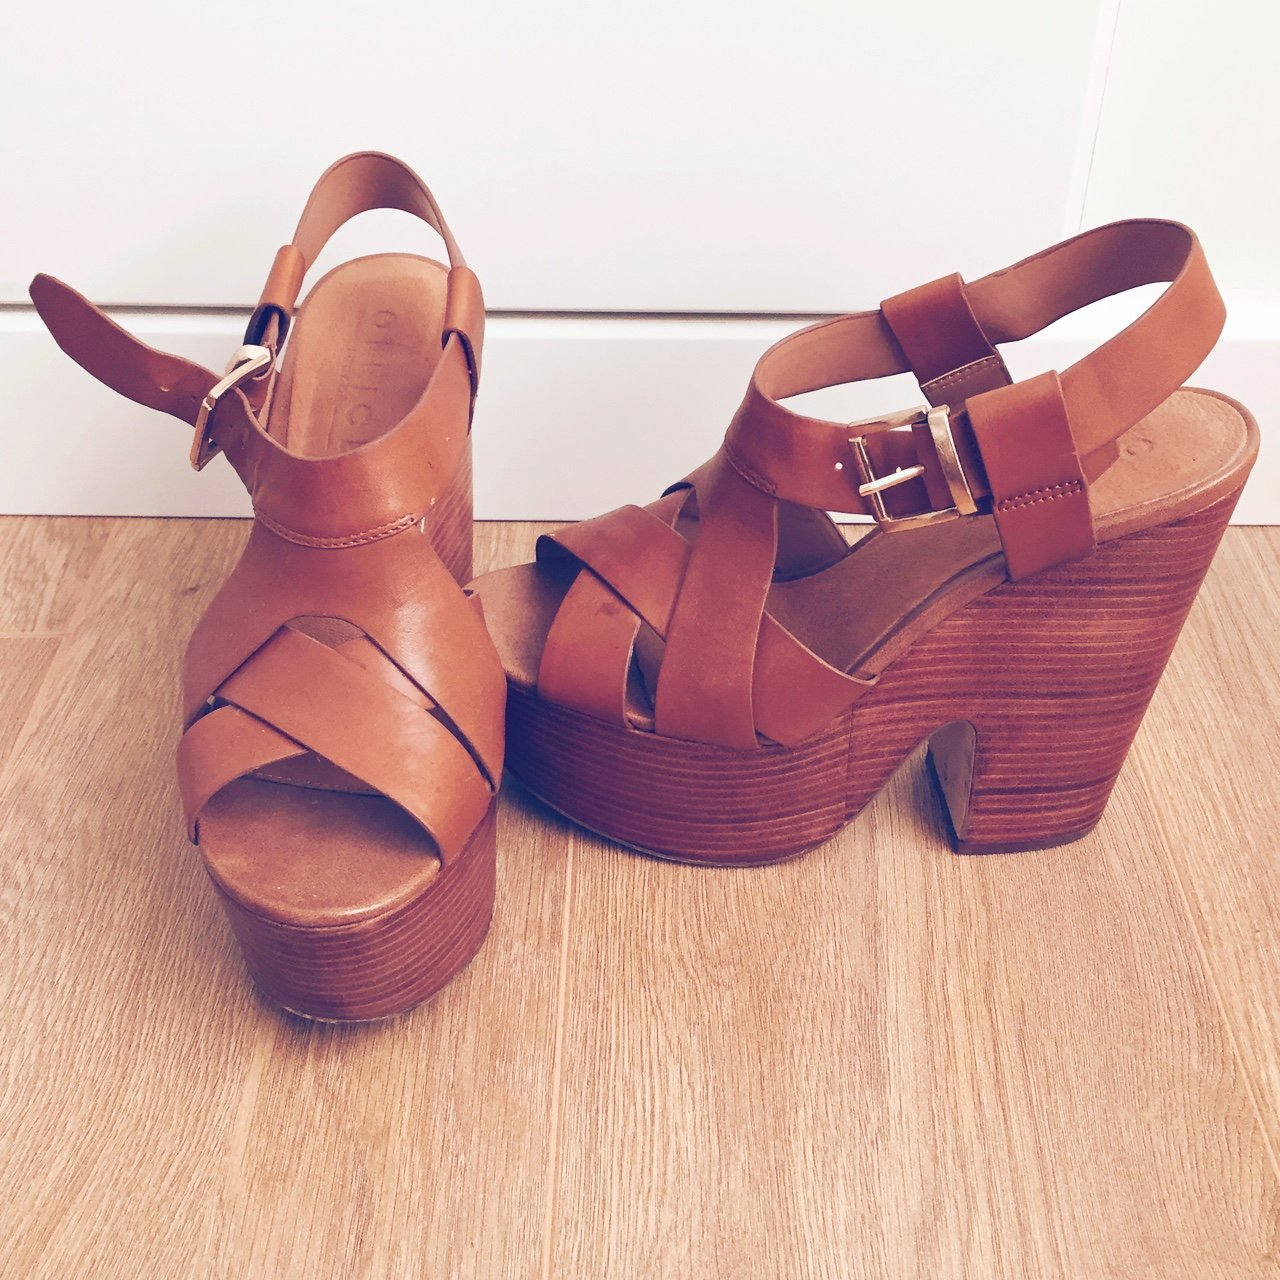 943d1efc4a047e Tanned heels from office worn a few times and have a few depop jpg  1280x1280 Tanned